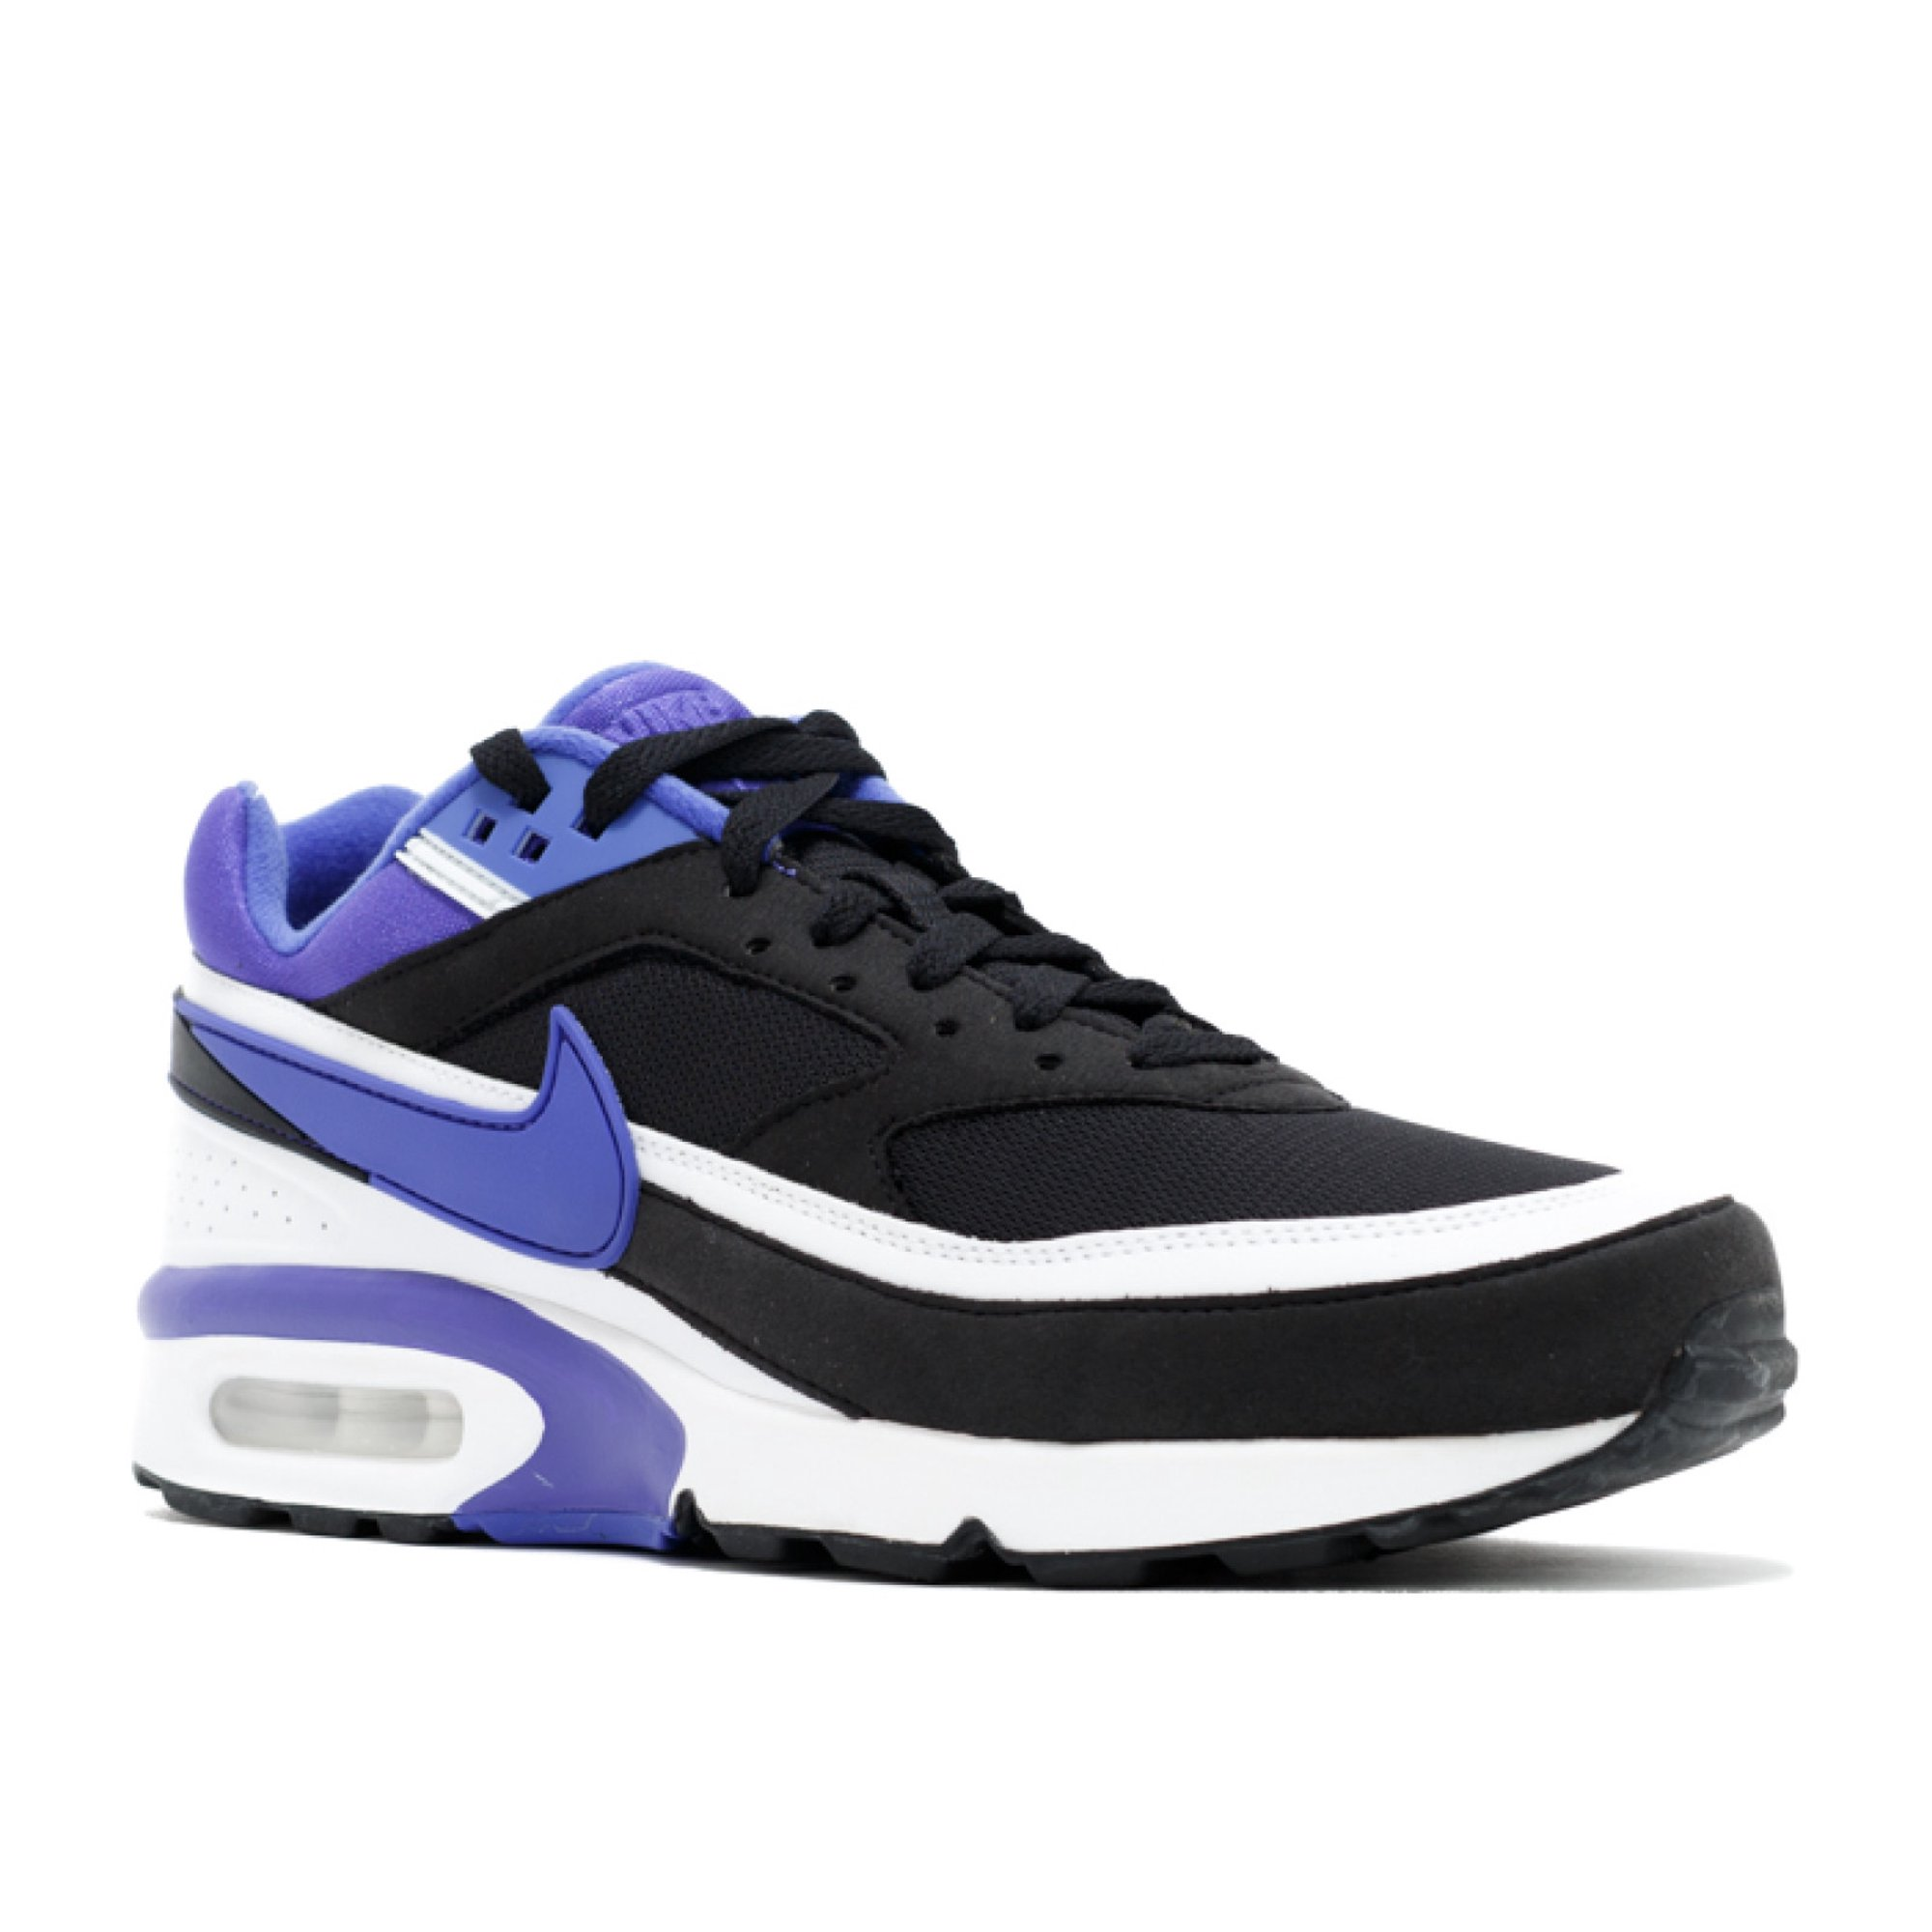 cheap for discount 16689 7c102 Nike - Men - Air Max Bw Og  Persian Violet 2016 Release  - 819522-051 -  Size 13   Walmart Canada